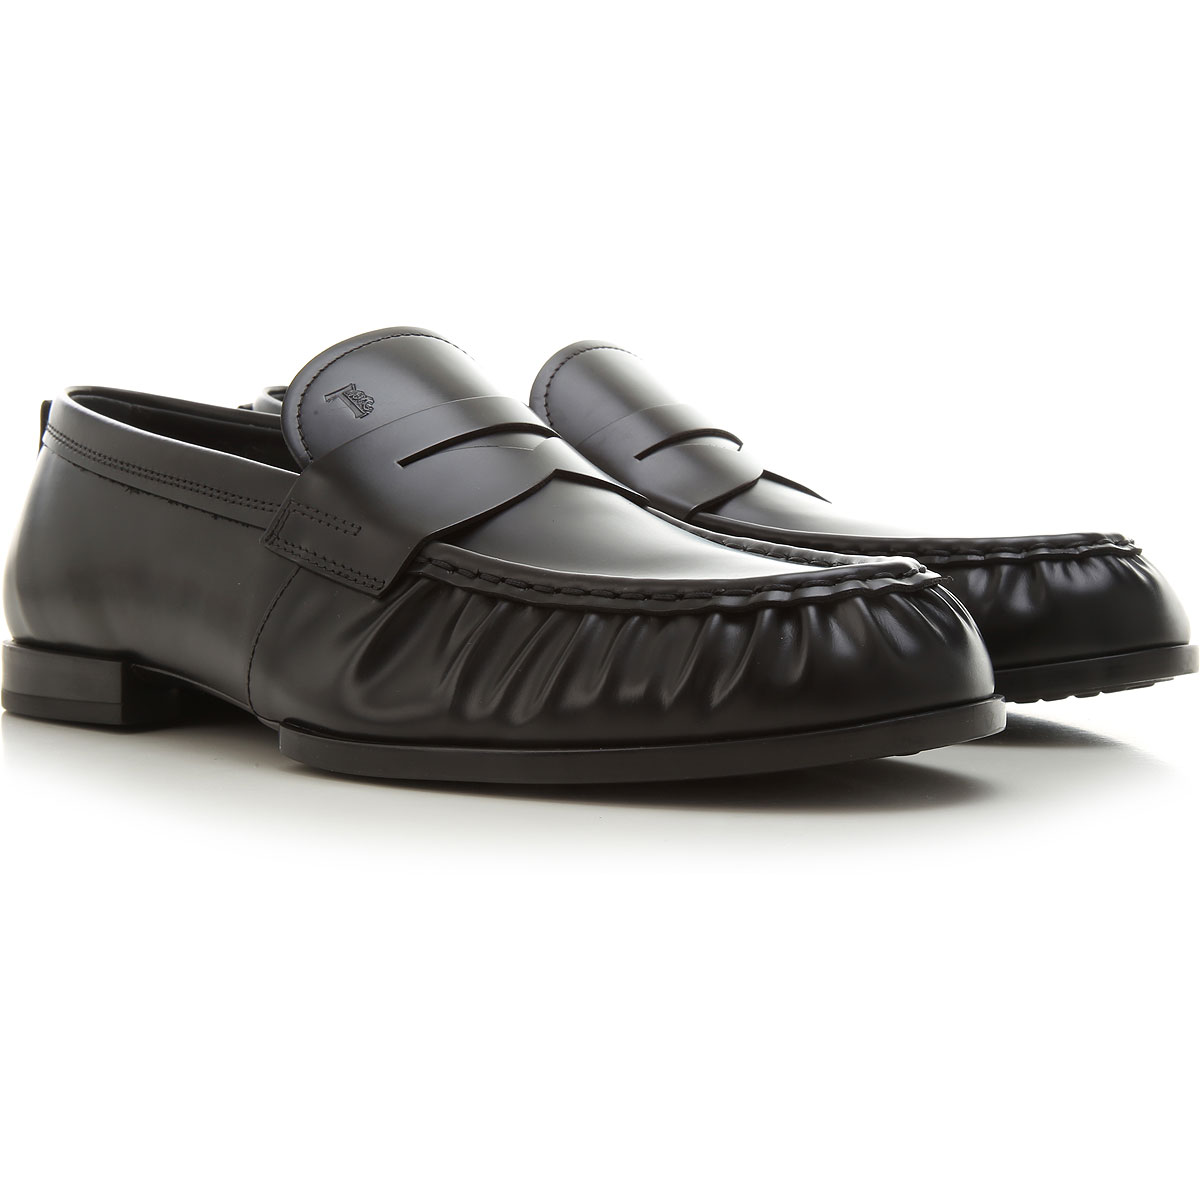 Tods Loafers for Men, Black, Leather, 2021, 10 10.5 11 12 13 6 6.5 7 7.5 8 8.5 9 9.5 from Tods